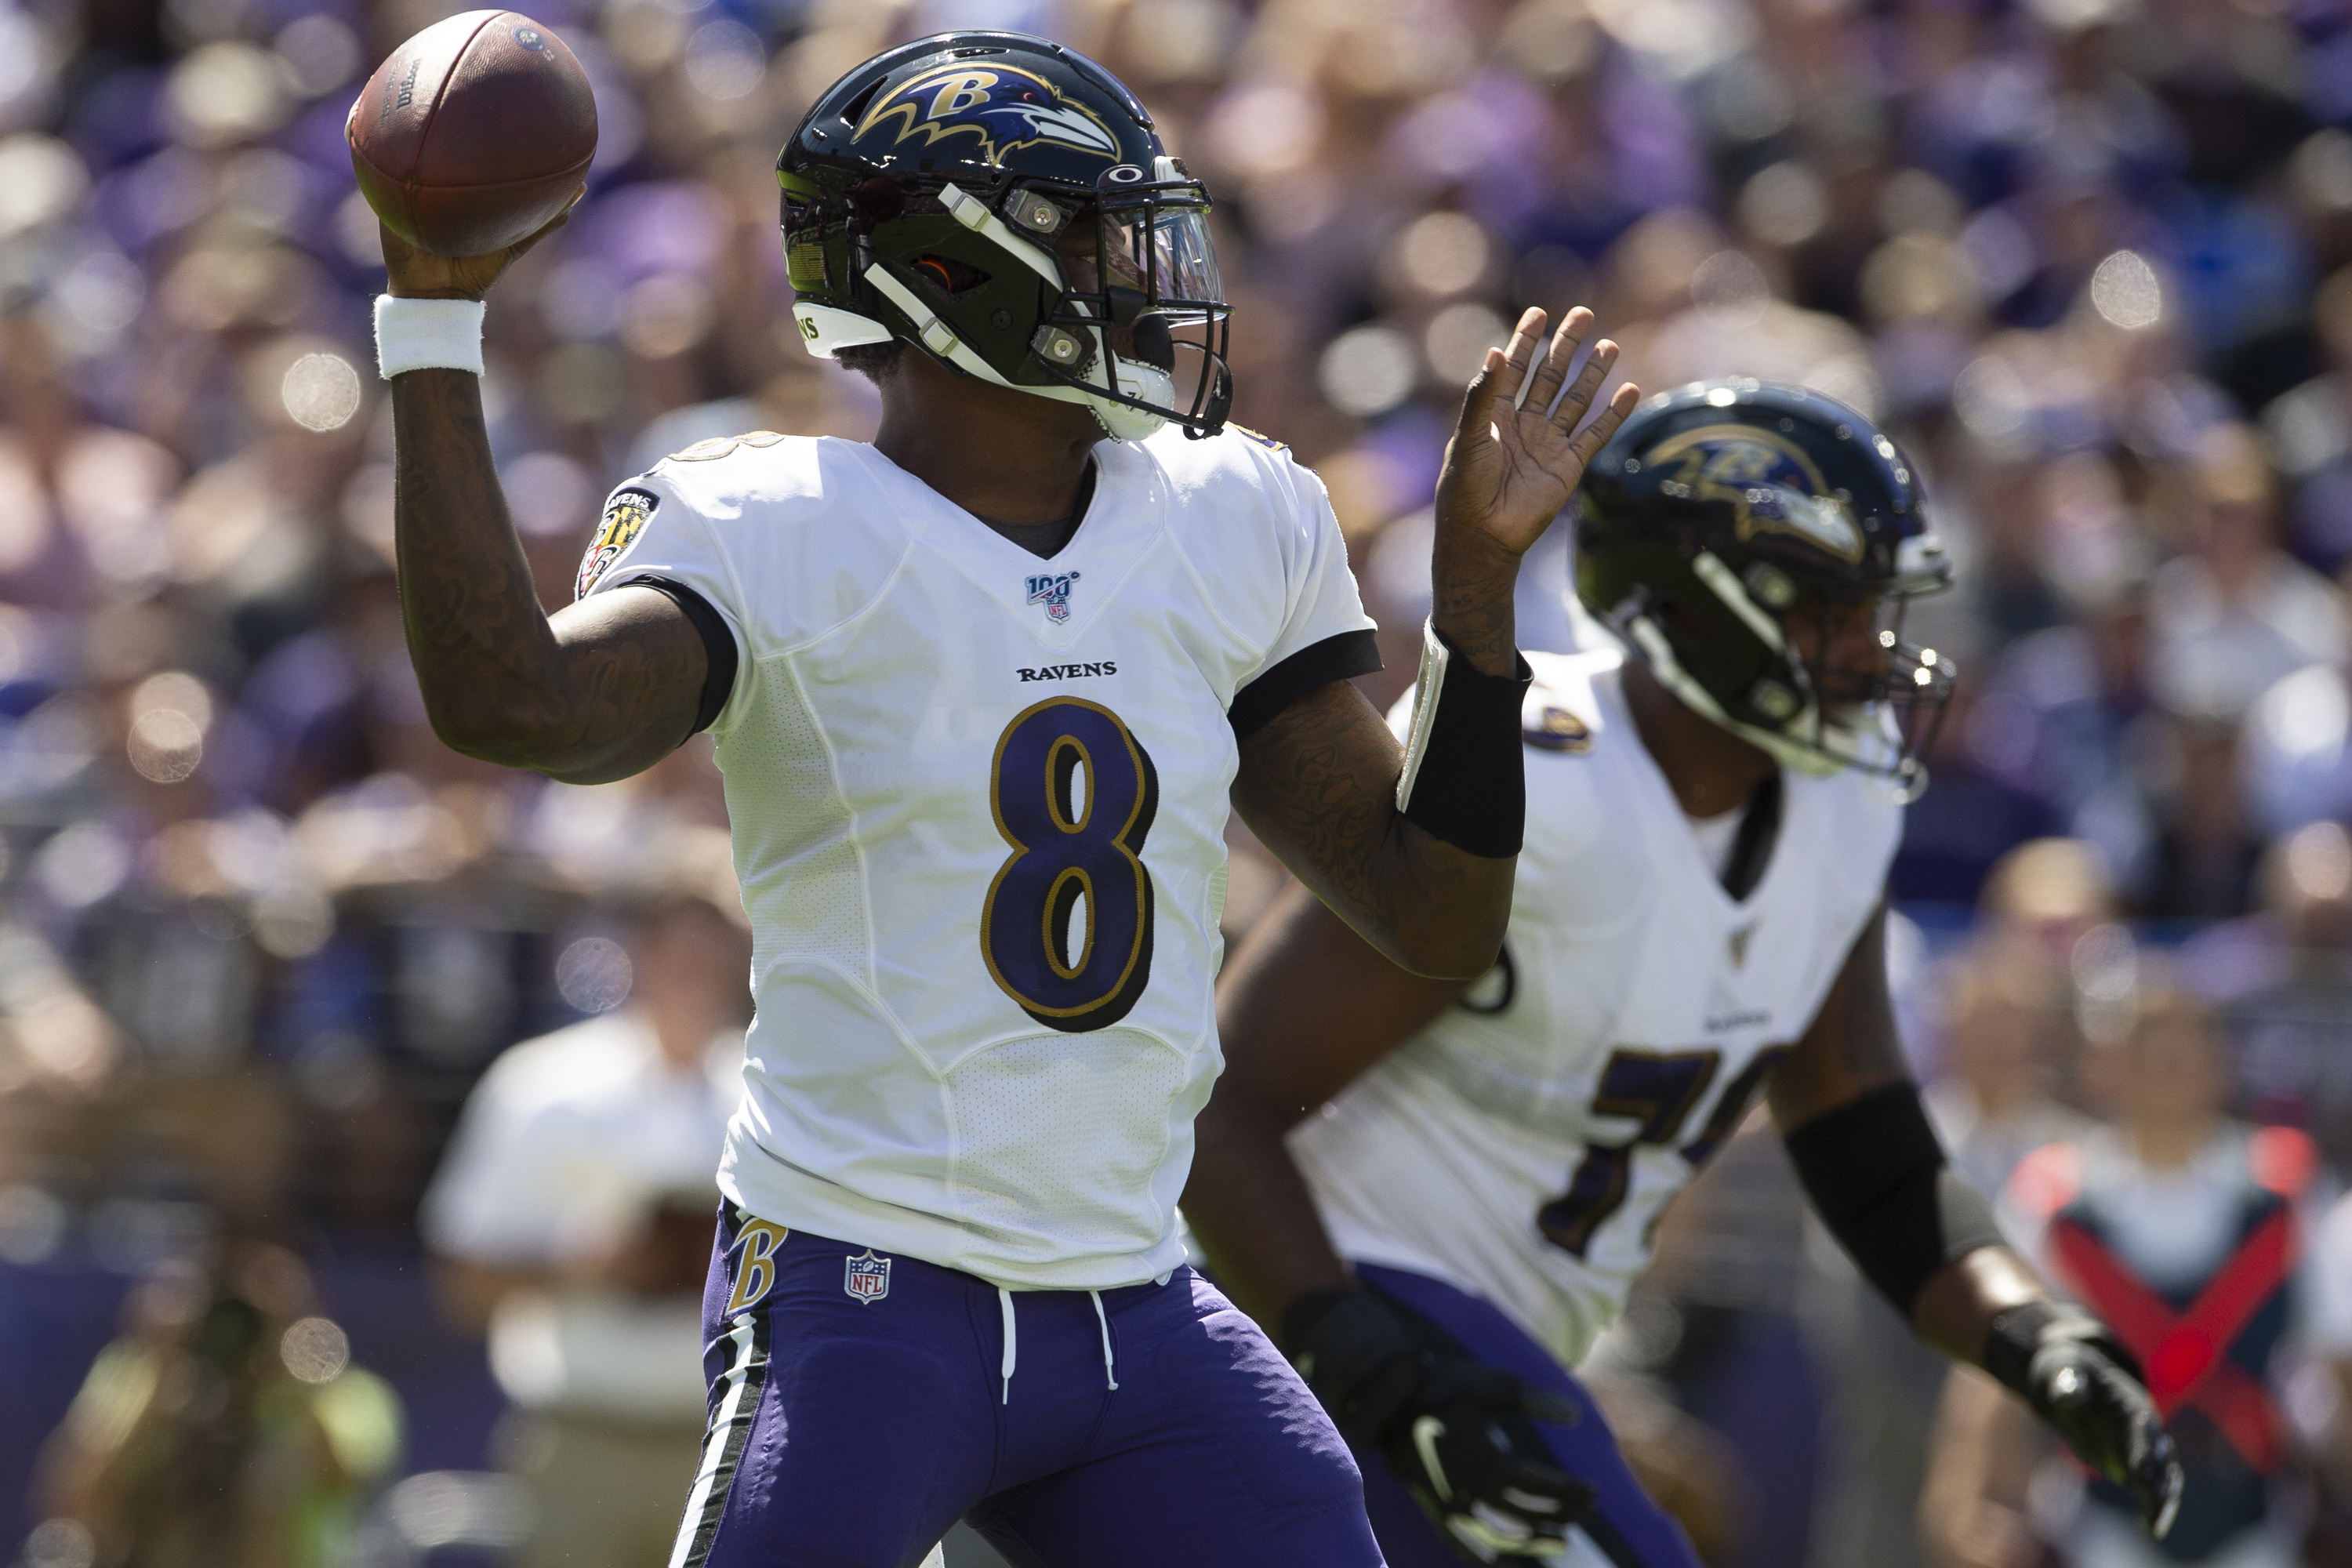 Ravens underdogs at Chiefs in marquee Sunday NFL matchup